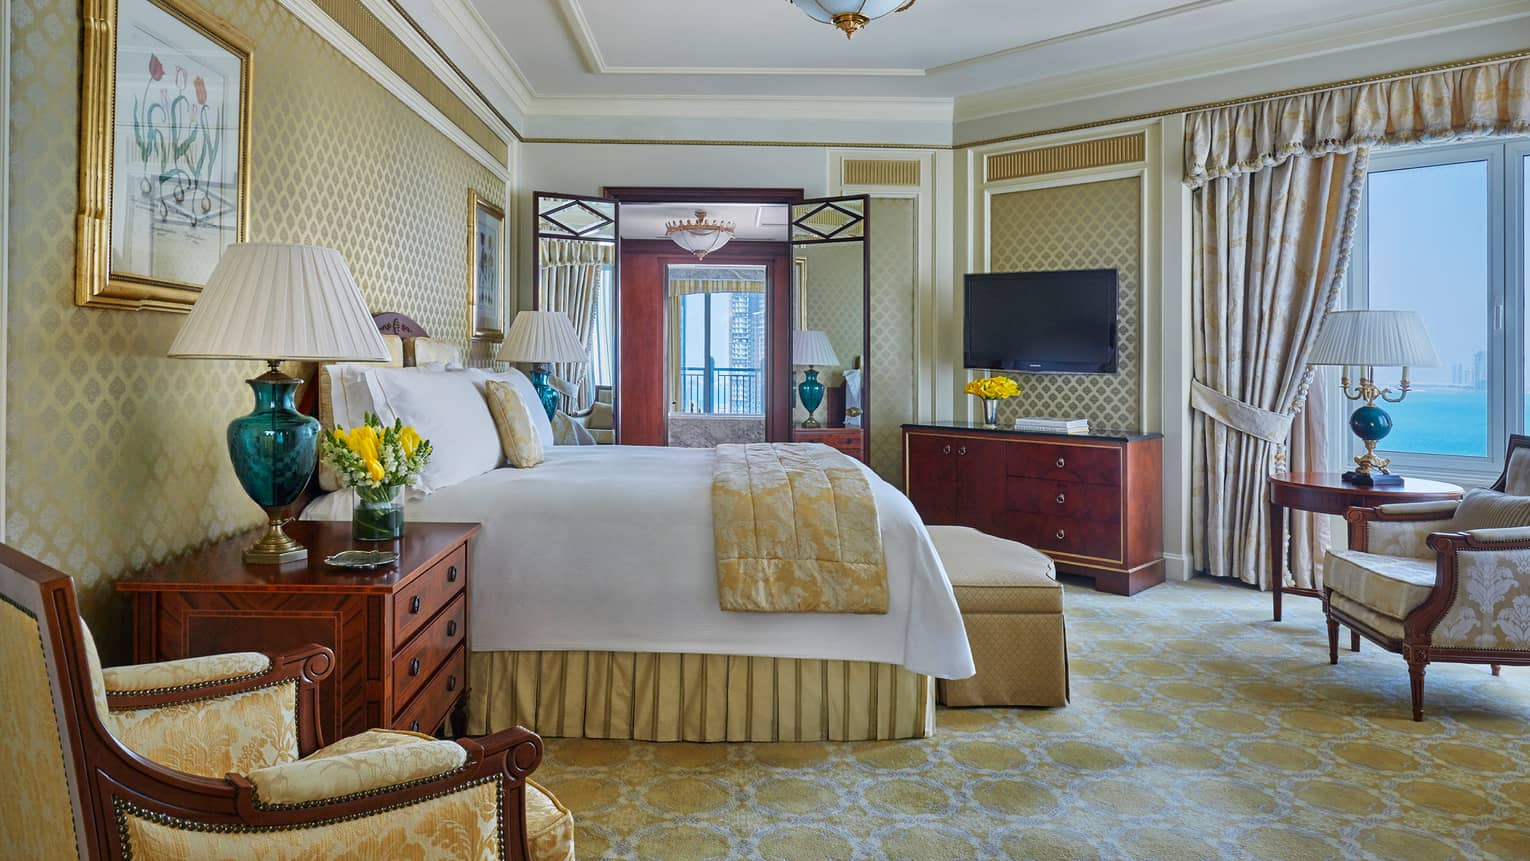 State Suite room with yellow and gold accents, window overlooking blue sea